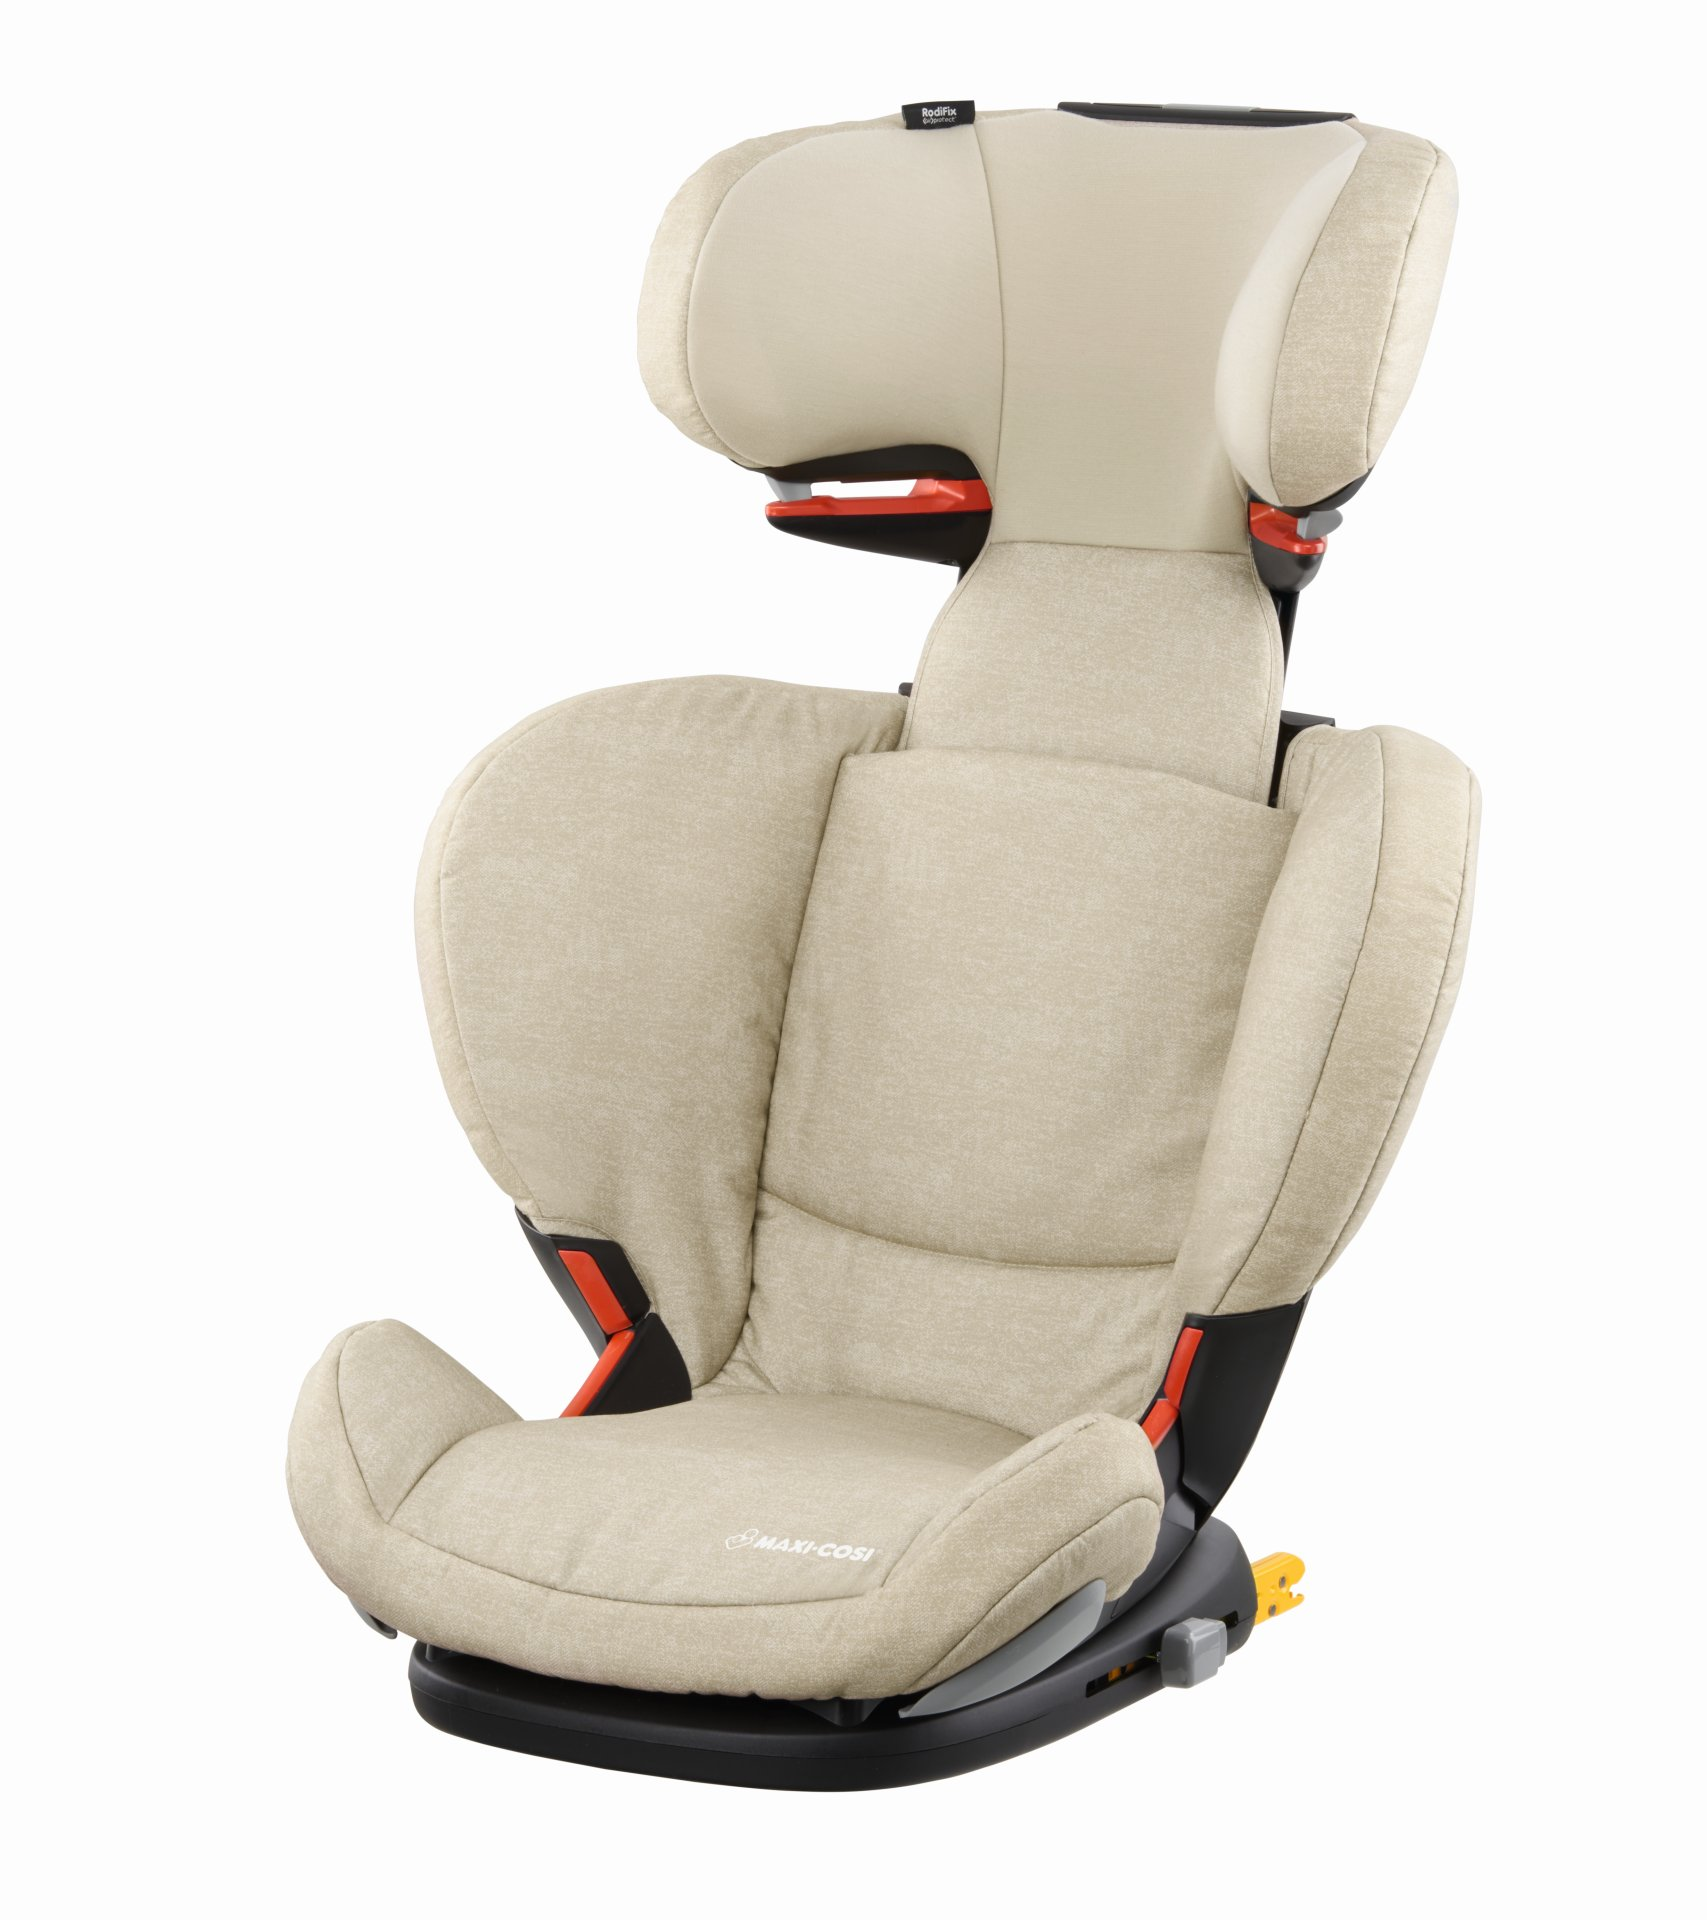 maxi cosi safety seat rodifix airprotect 2018 nomad sand. Black Bedroom Furniture Sets. Home Design Ideas